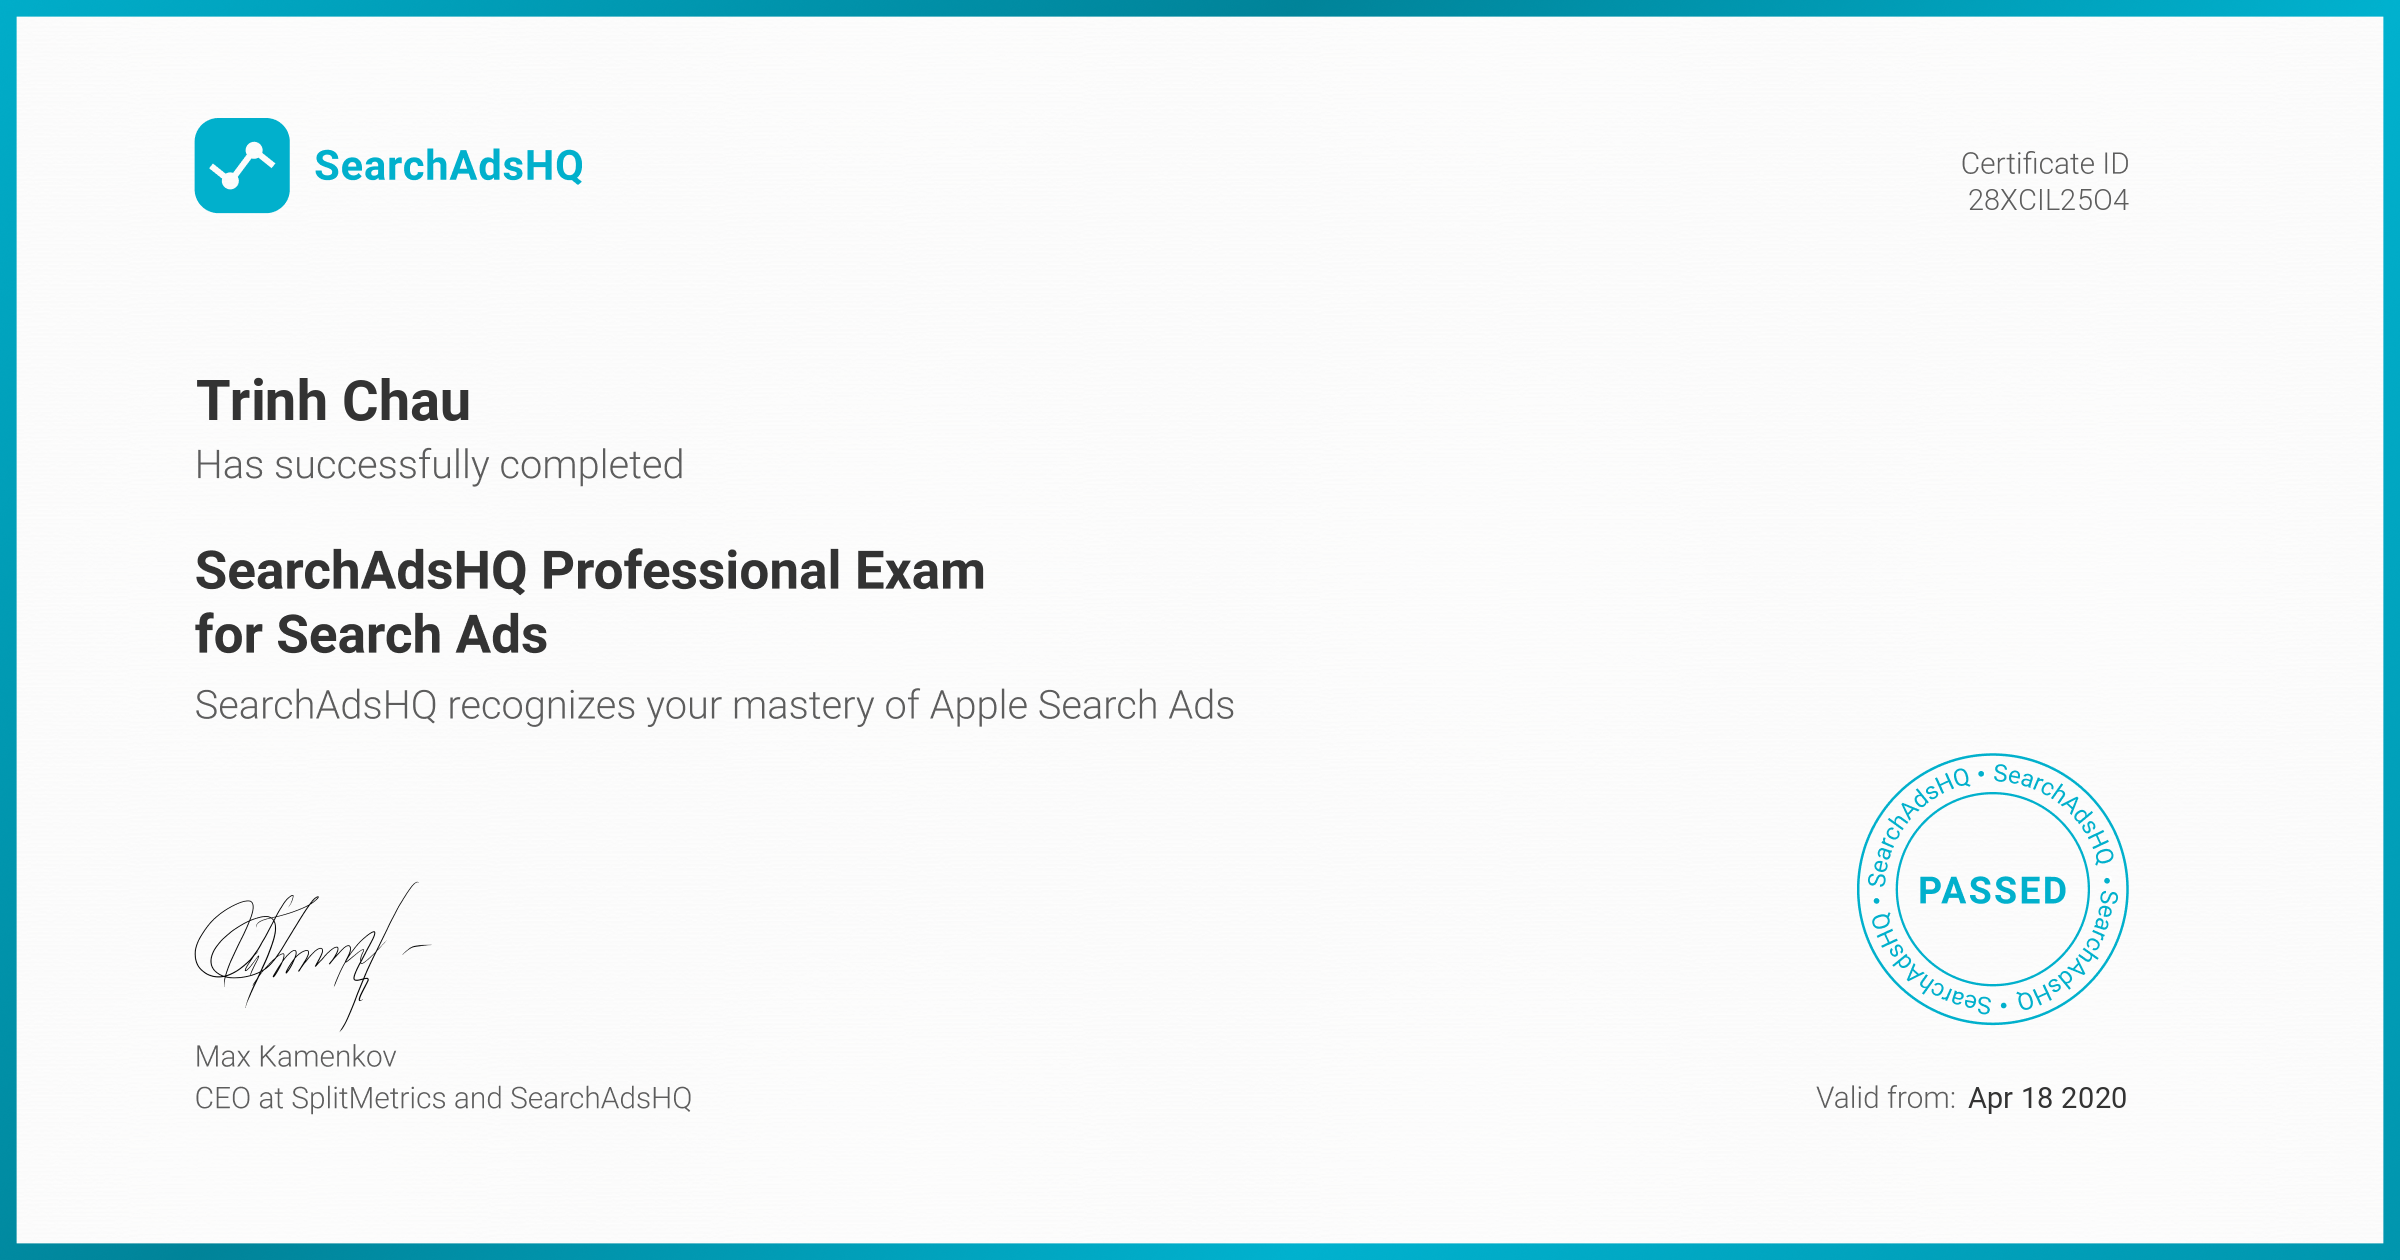 Certificate for Trinh Chau | SearchAdsHQ Professional Exam for Search Ads